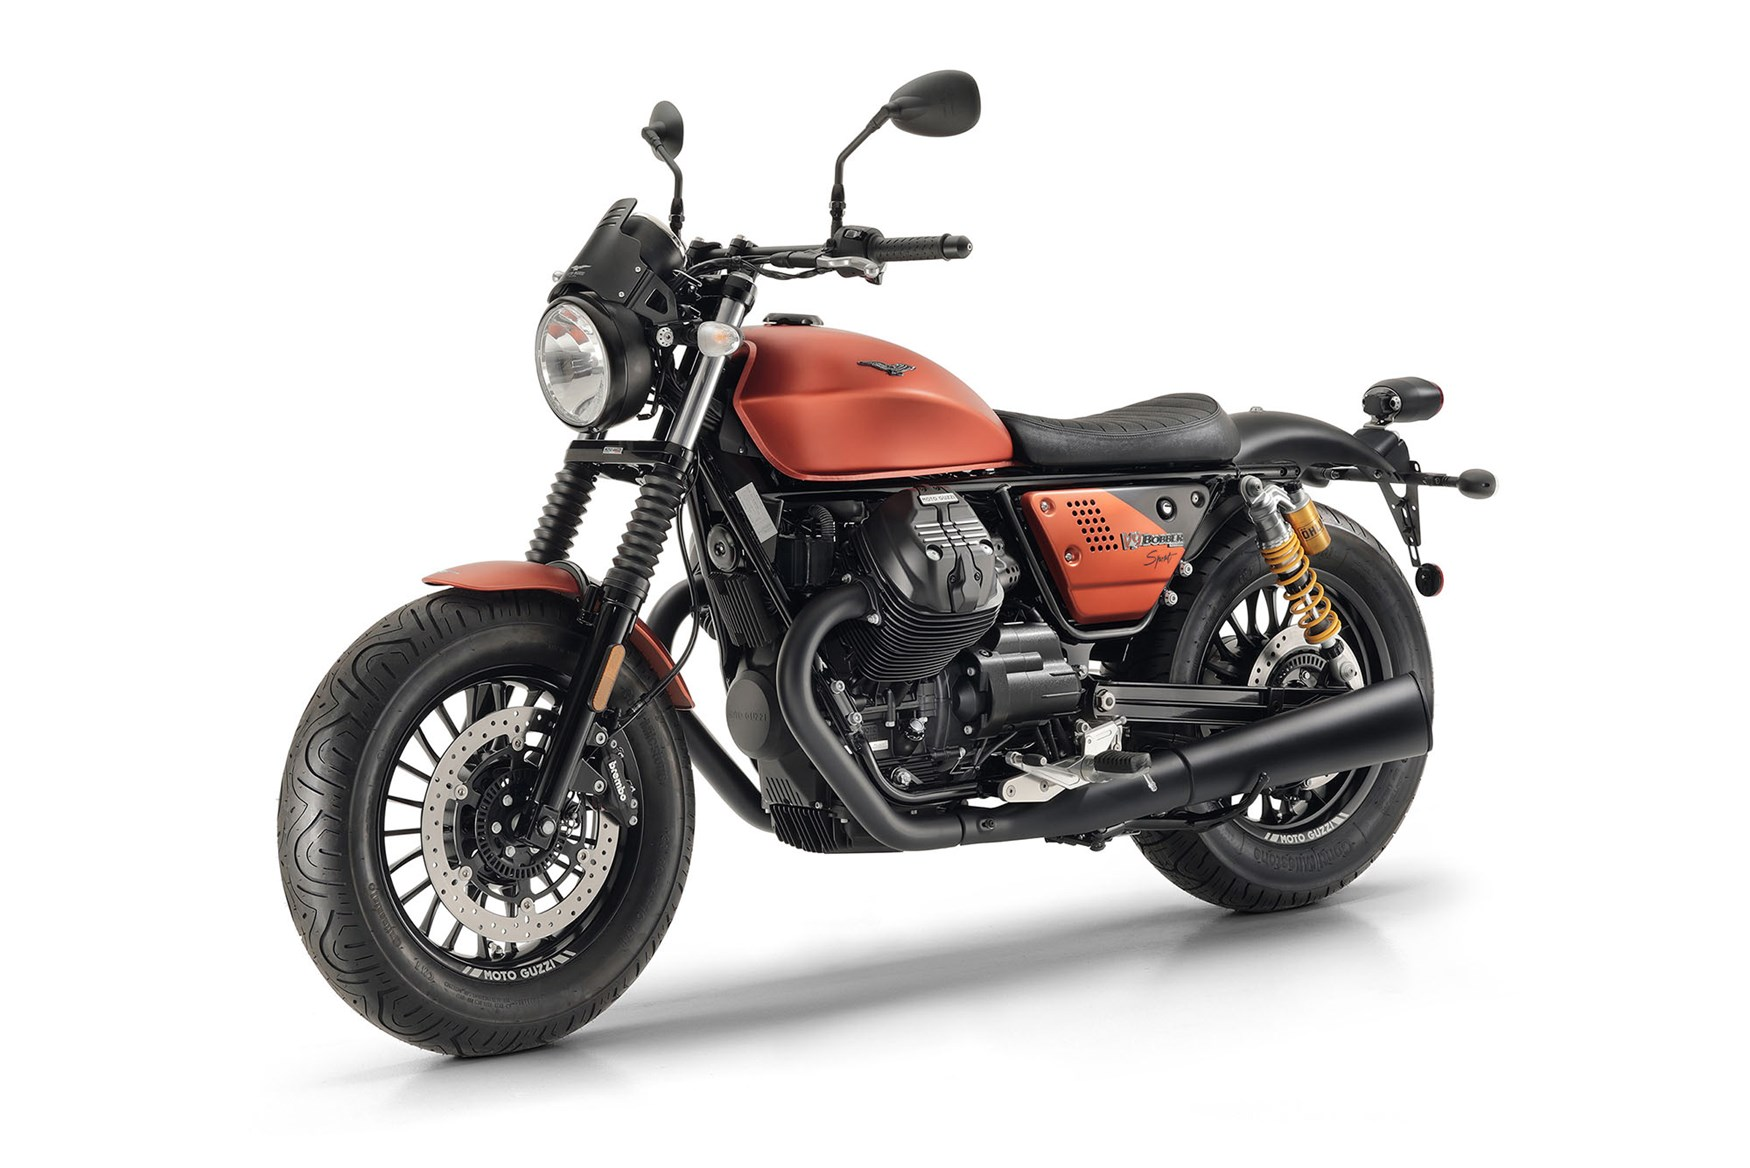 moto guzzi v9 bobber sport unveiled at intermot bikesrepublic. Black Bedroom Furniture Sets. Home Design Ideas